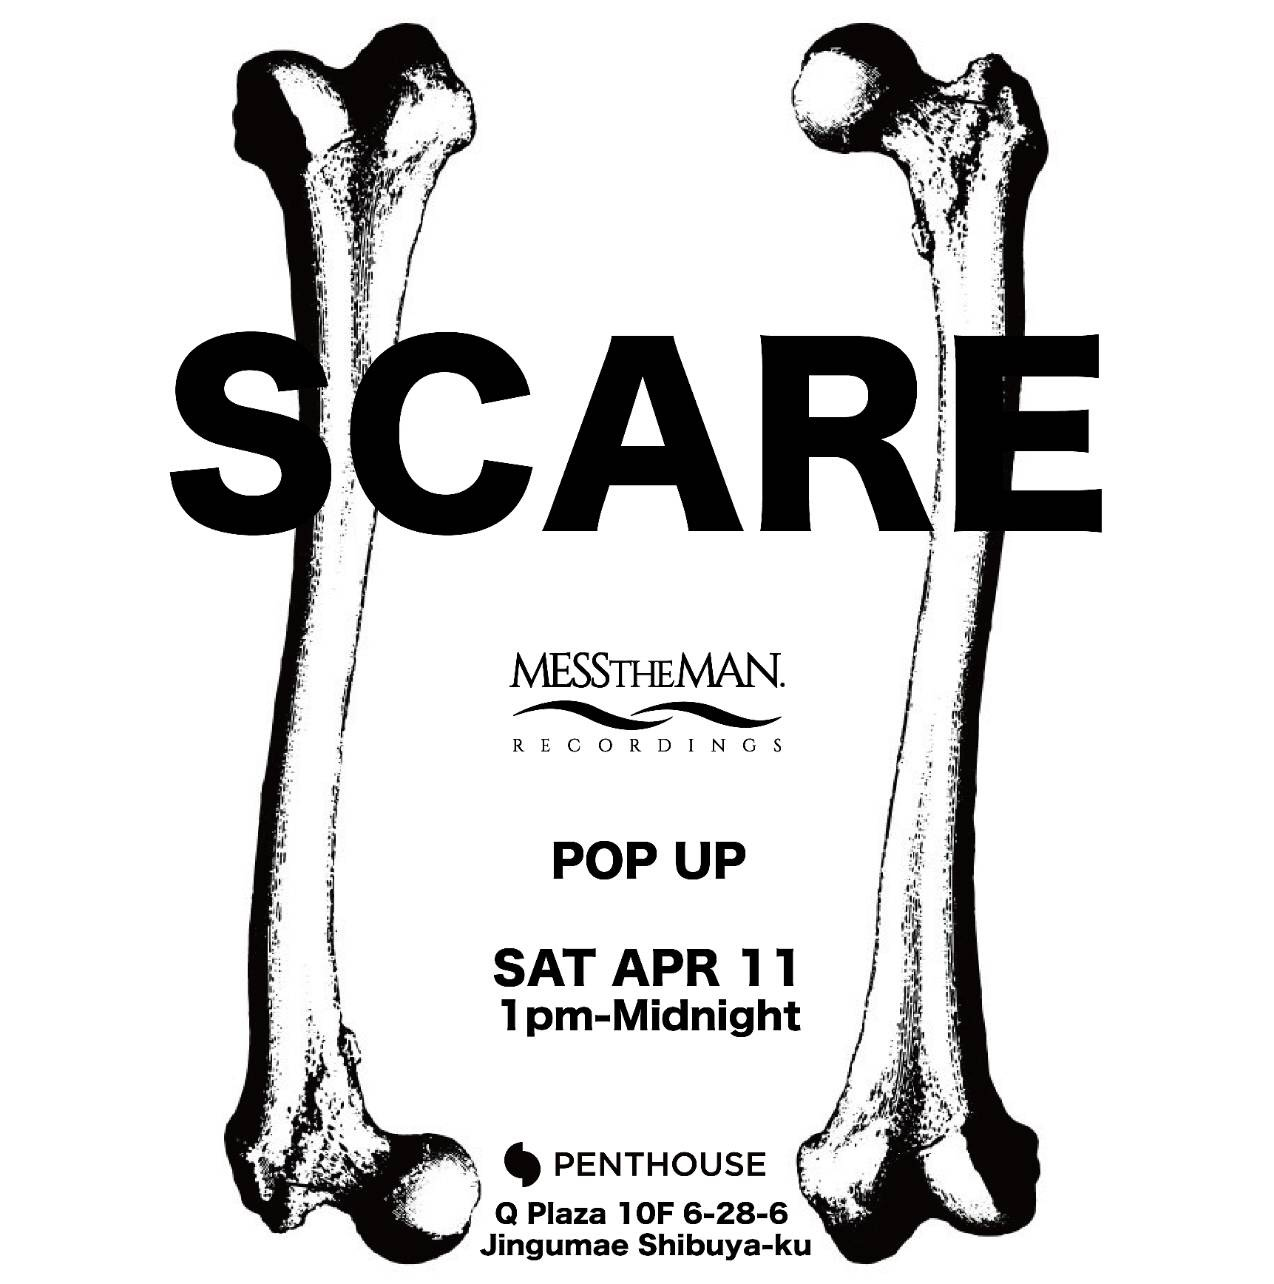 SCARE -MESS THE MAN RECORDINGS POP UP-